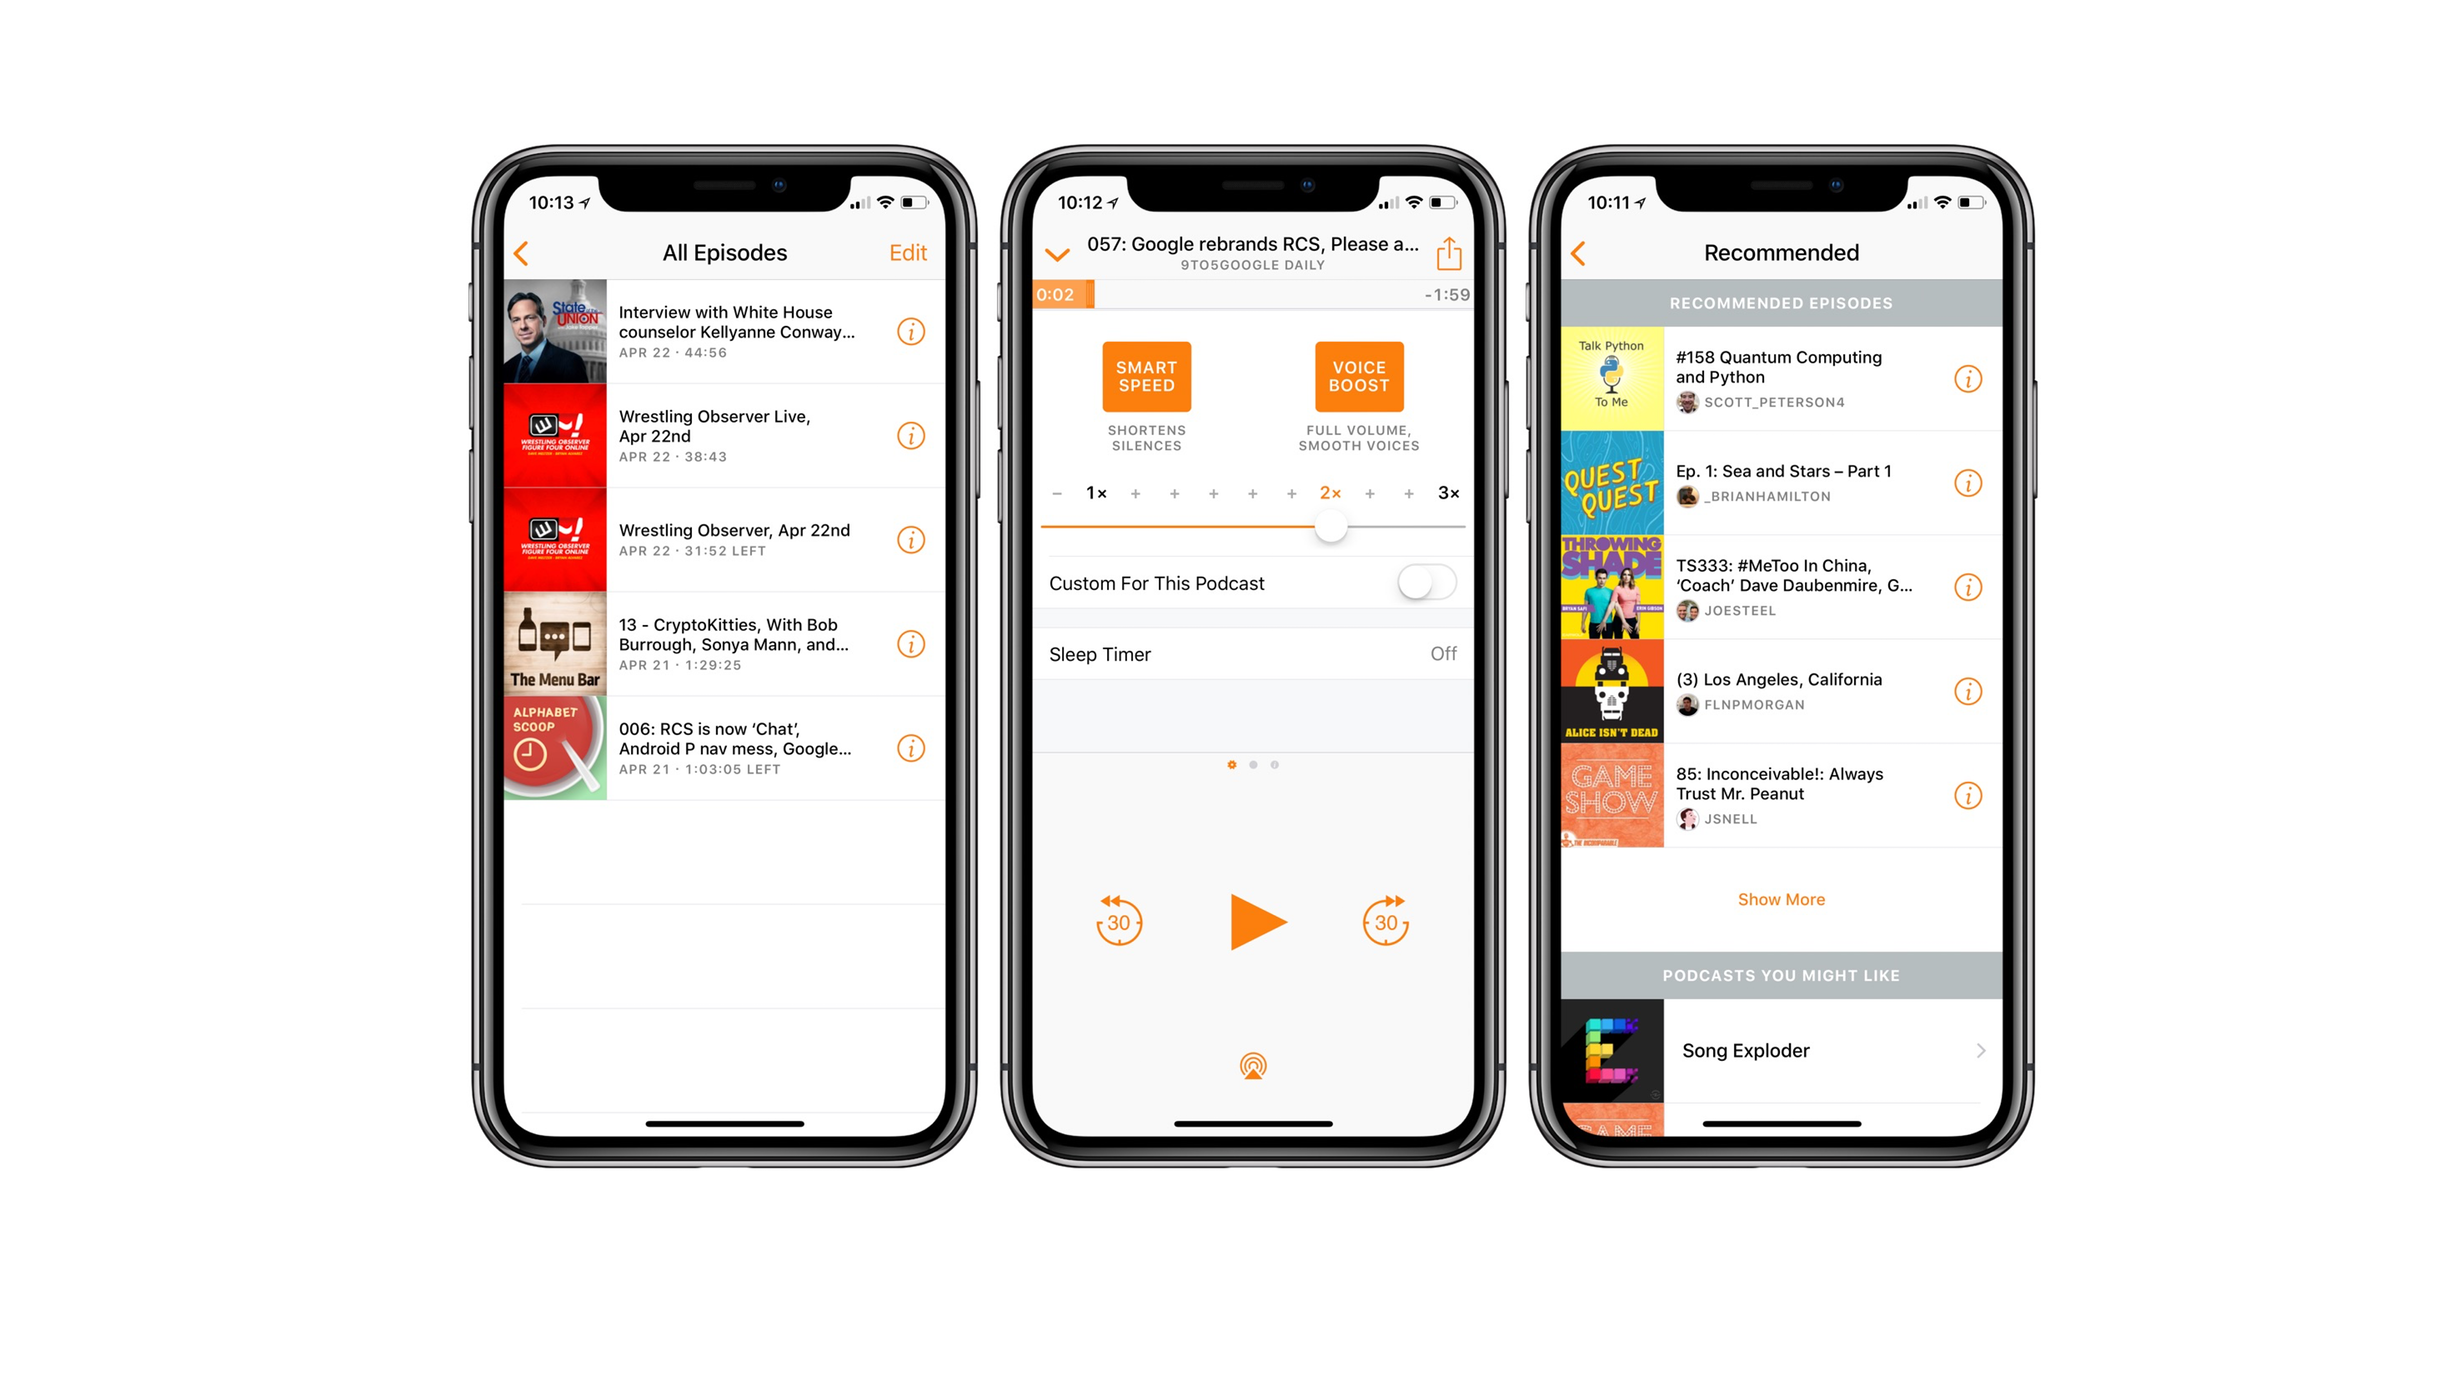 What are Podcasts on iPhone, and why are they needed? 76